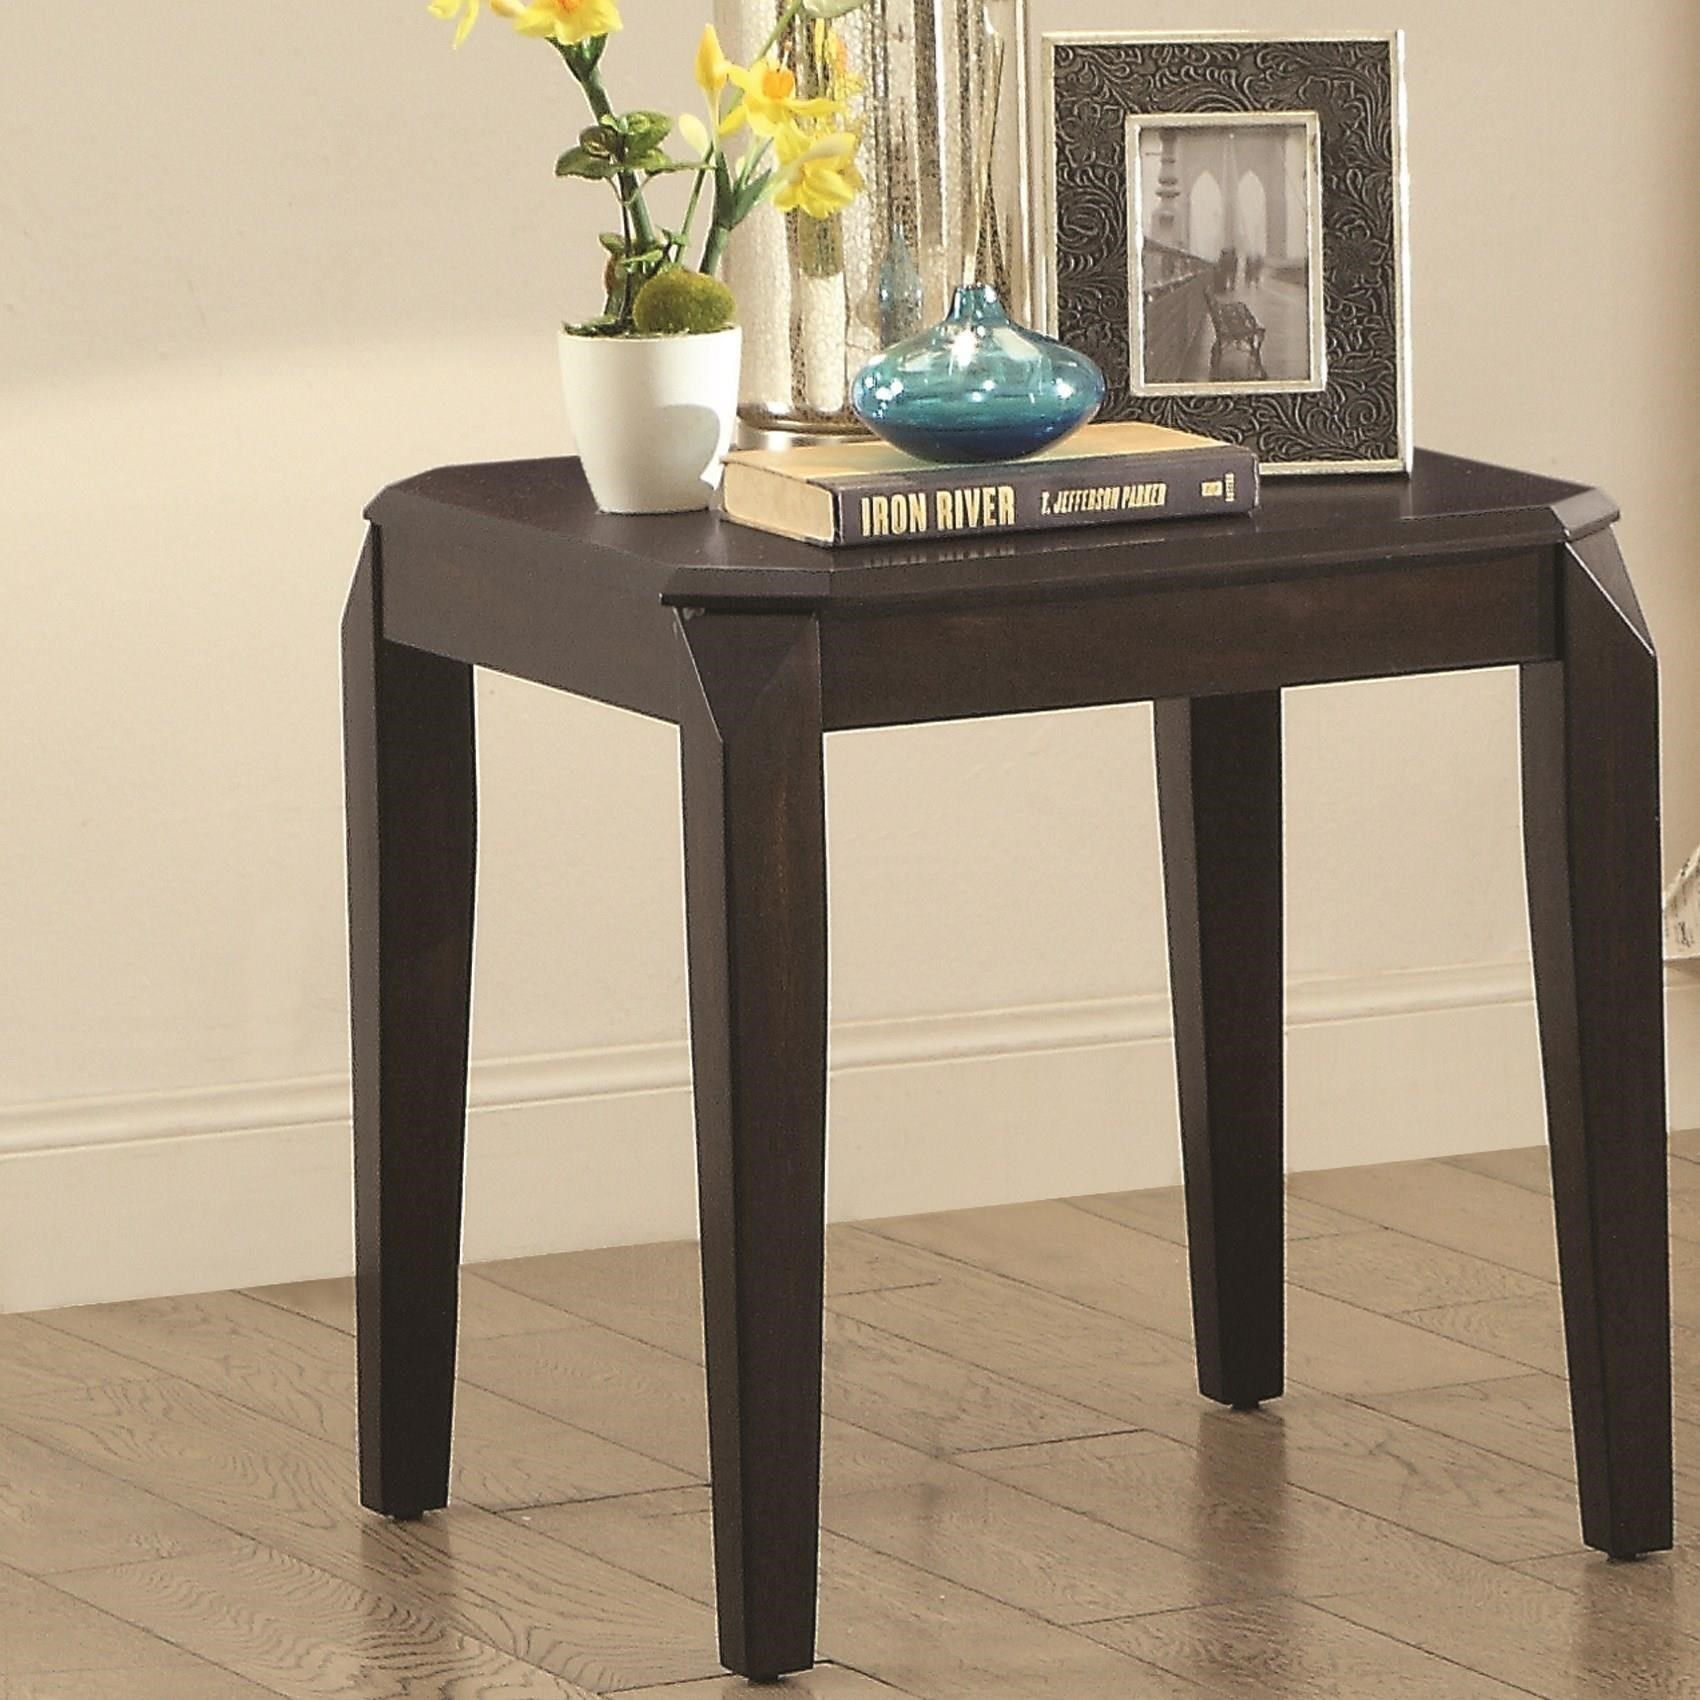 72104 End Table by Michael Alan CSR Select at Michael Alan Furniture & Design